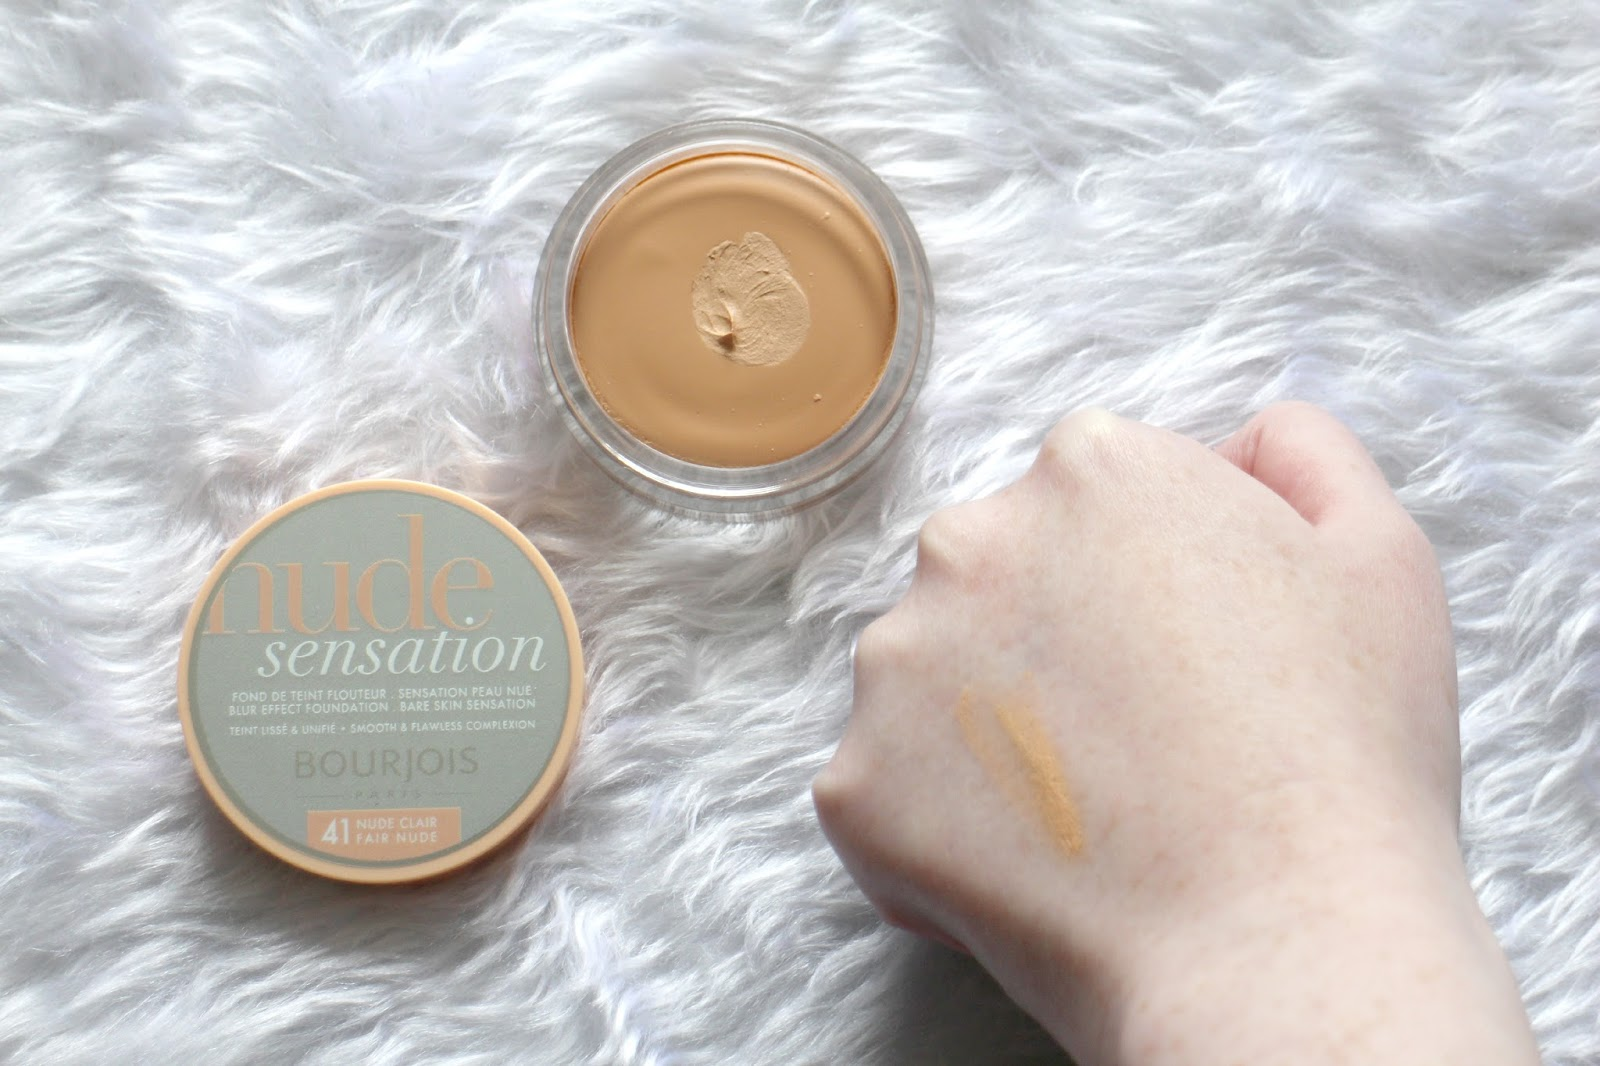 Bourjois Nude Sensation Swatch